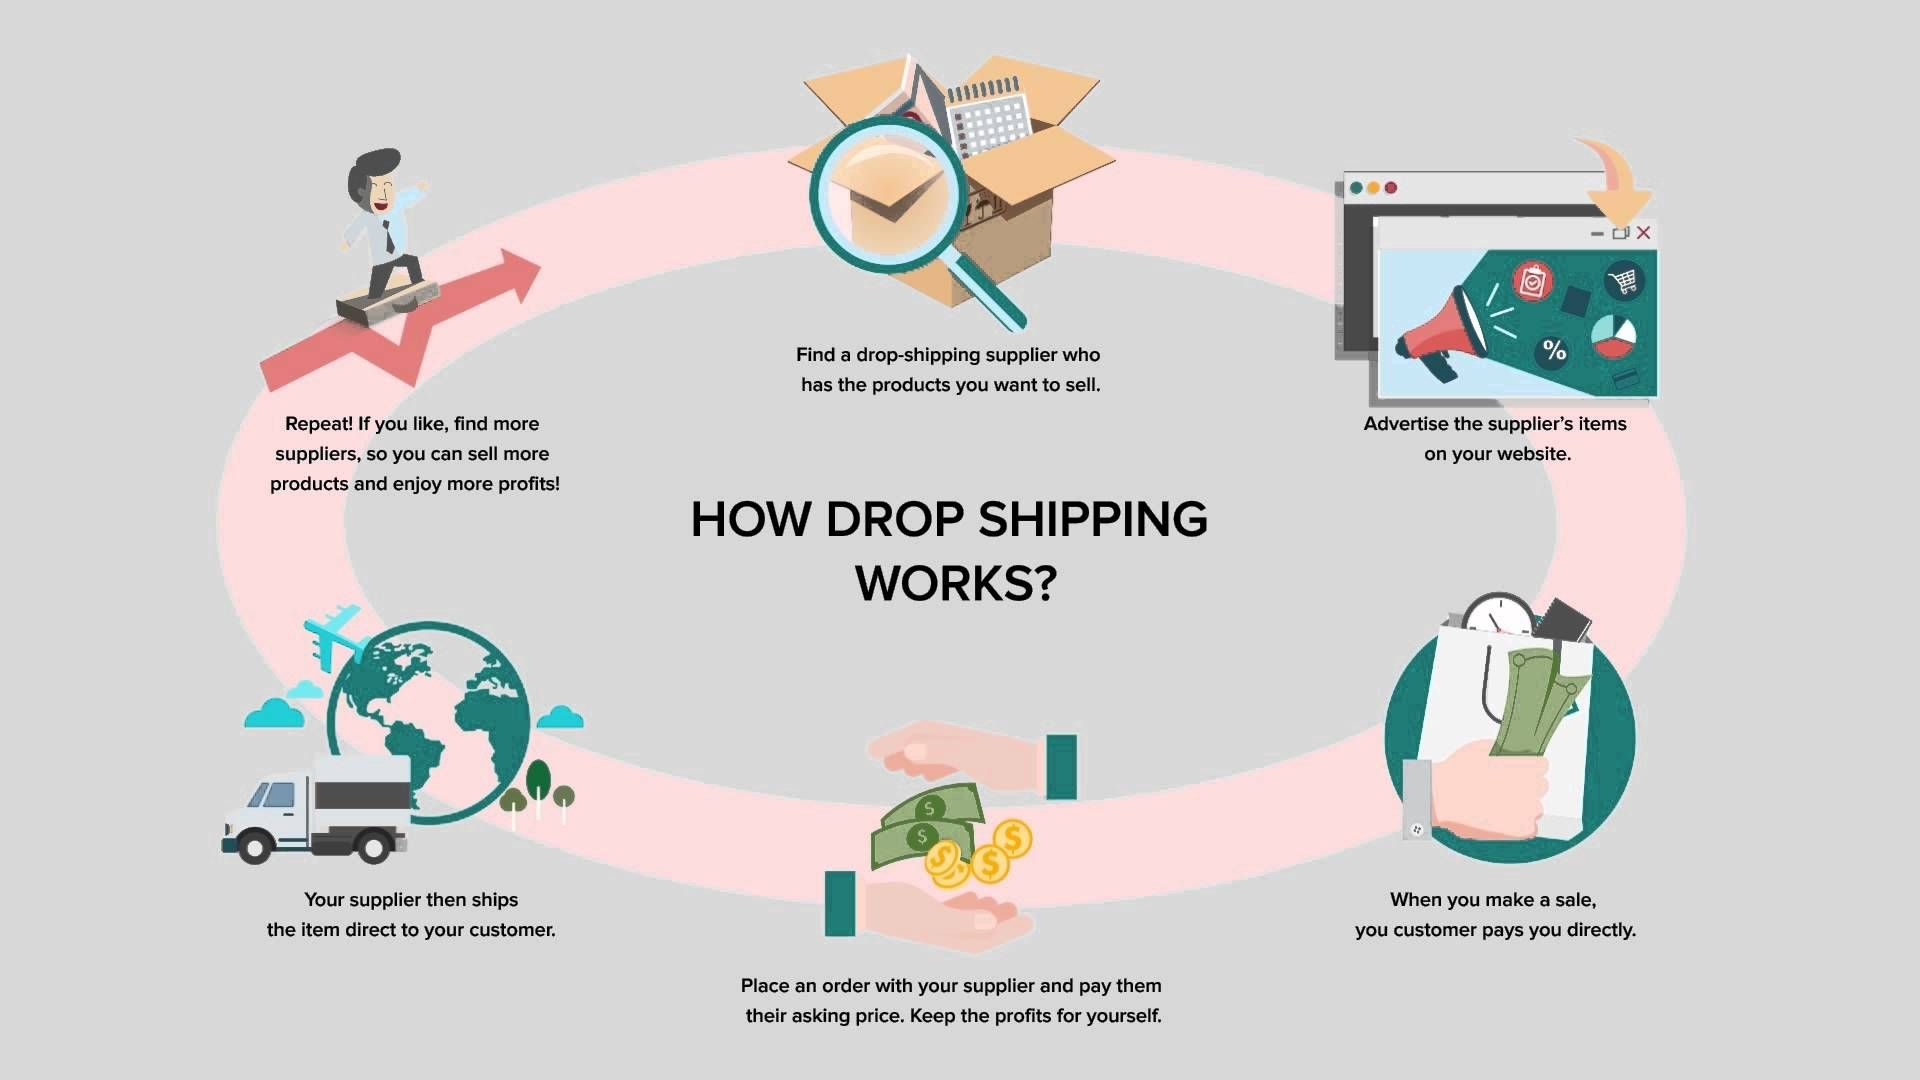 hight resolution of hi would you like to know that how to search dropshipping products on aliexpress then i will suggest you guys to check this guide that will help you for